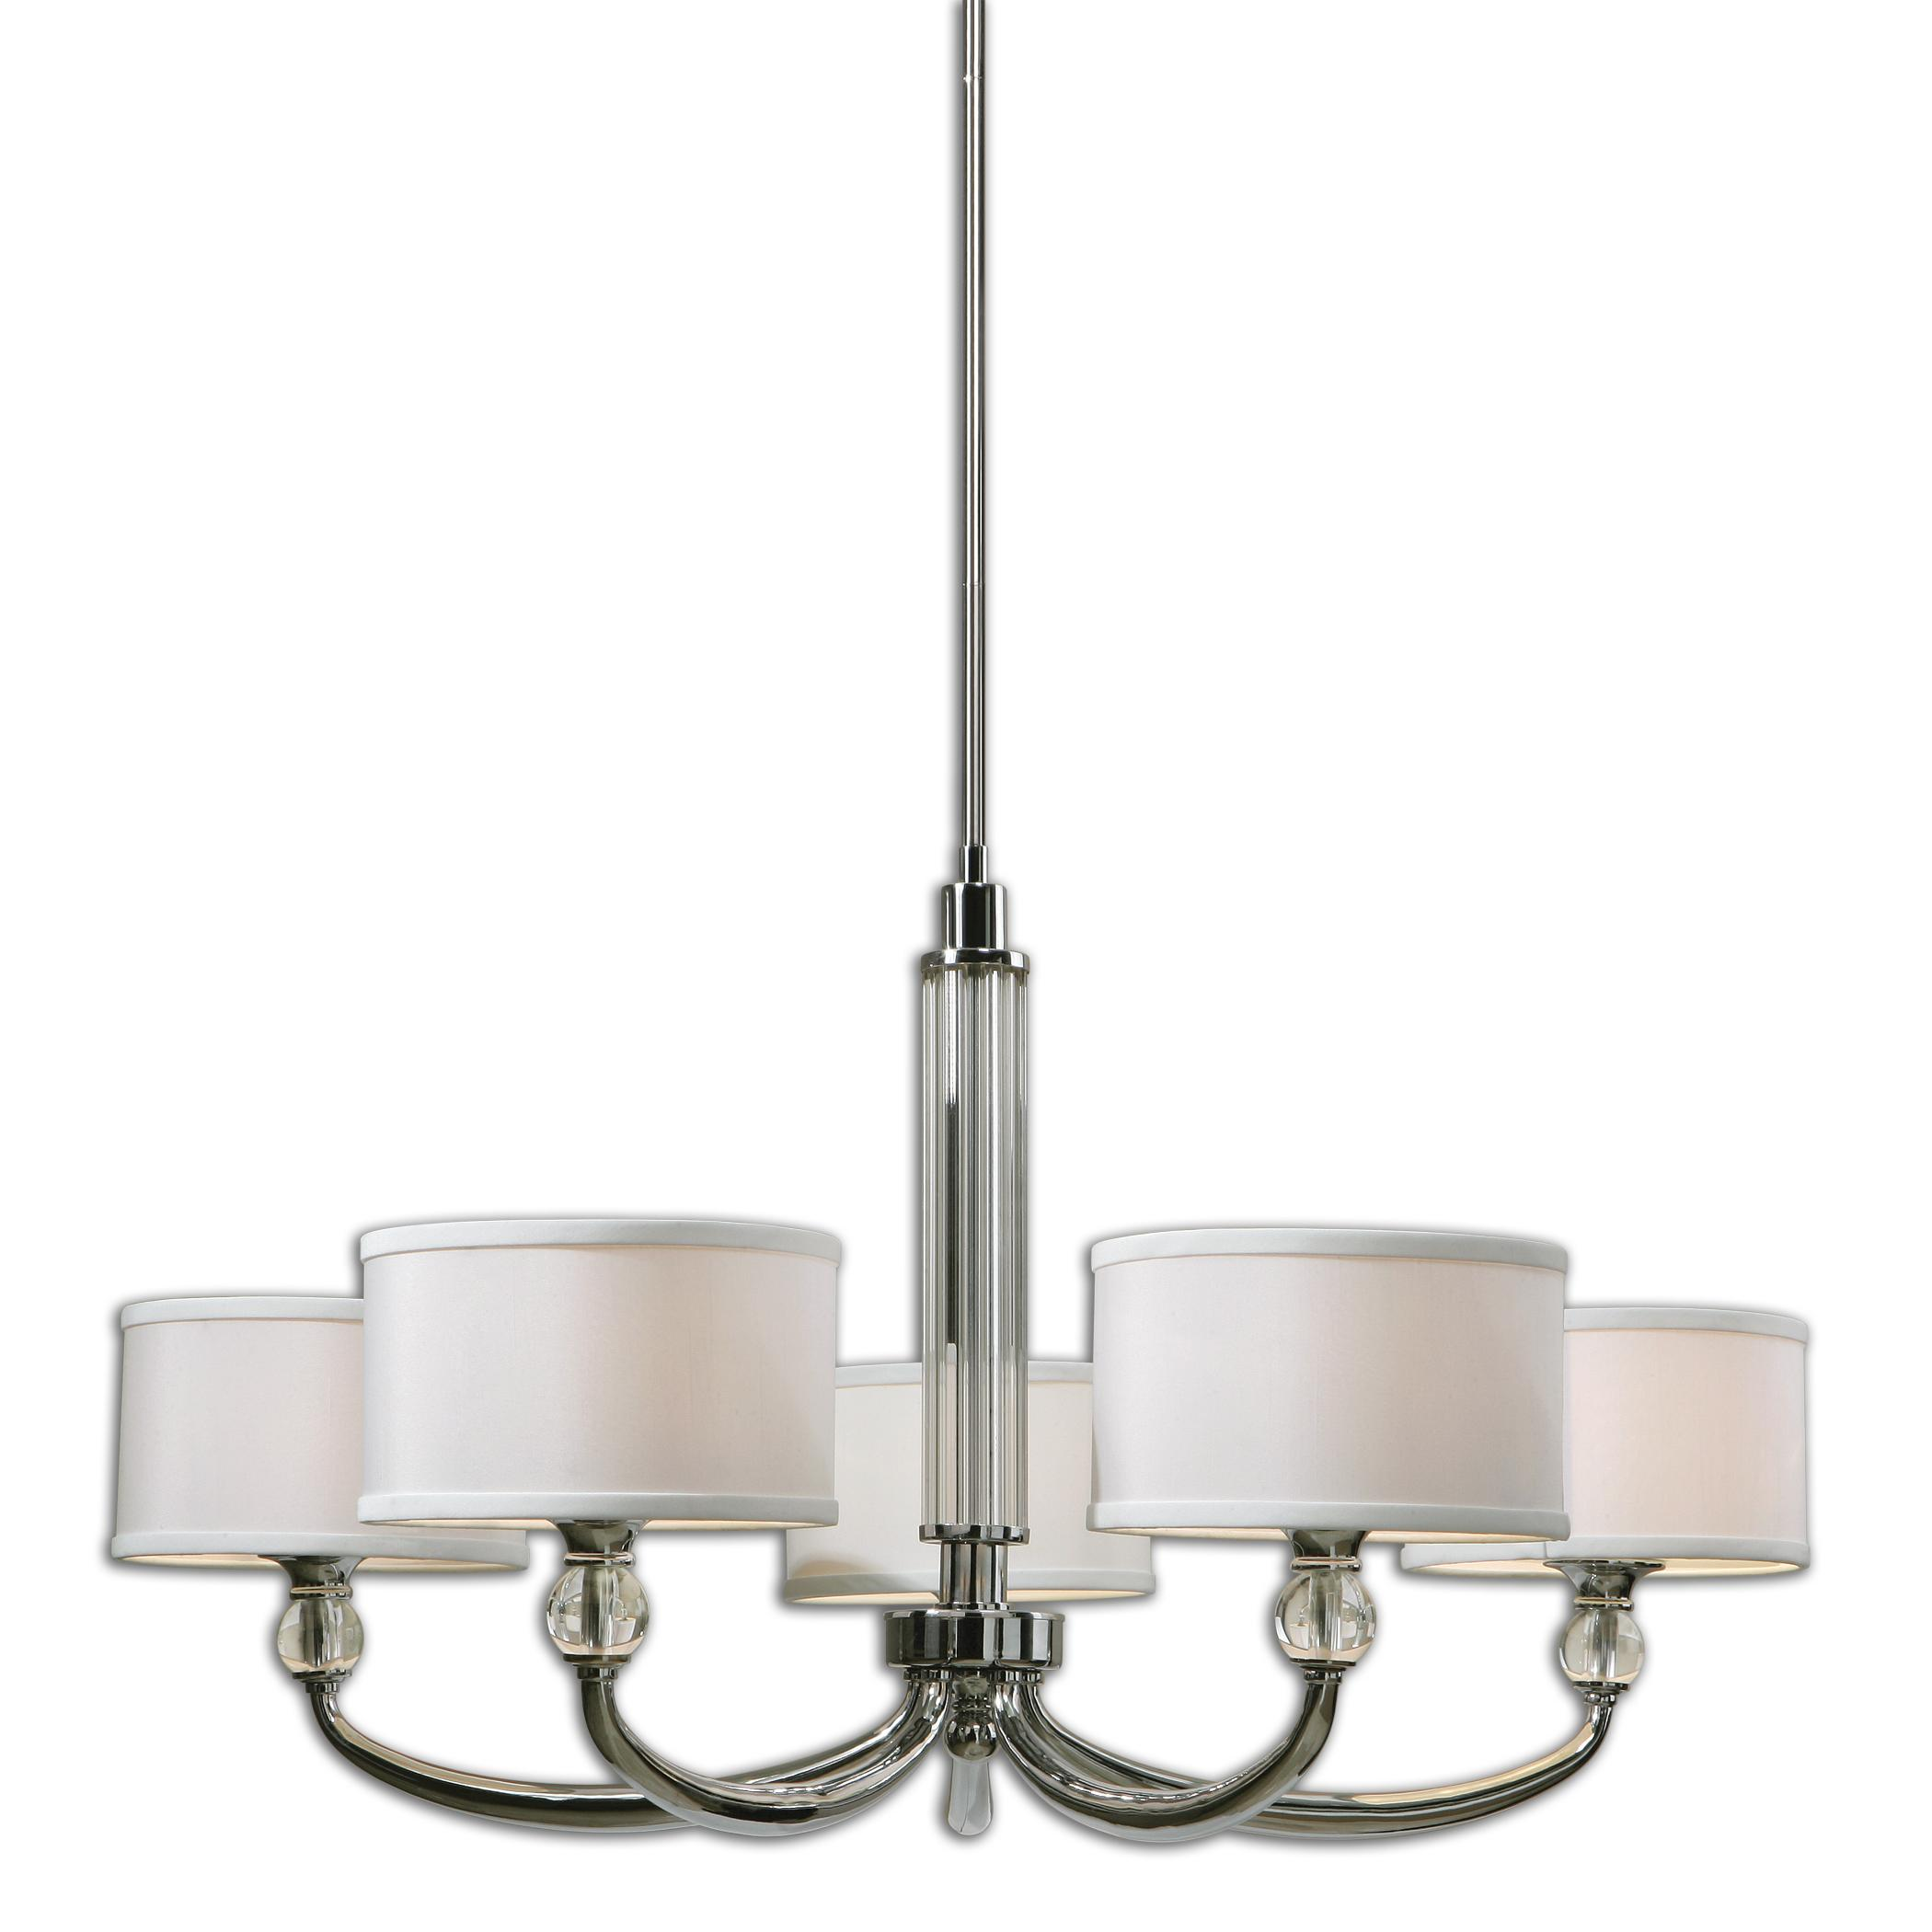 Uttermost Lighting Fixtures Uttermost Vanalen 5 Light Chrome Chandelier - Item Number: 21260